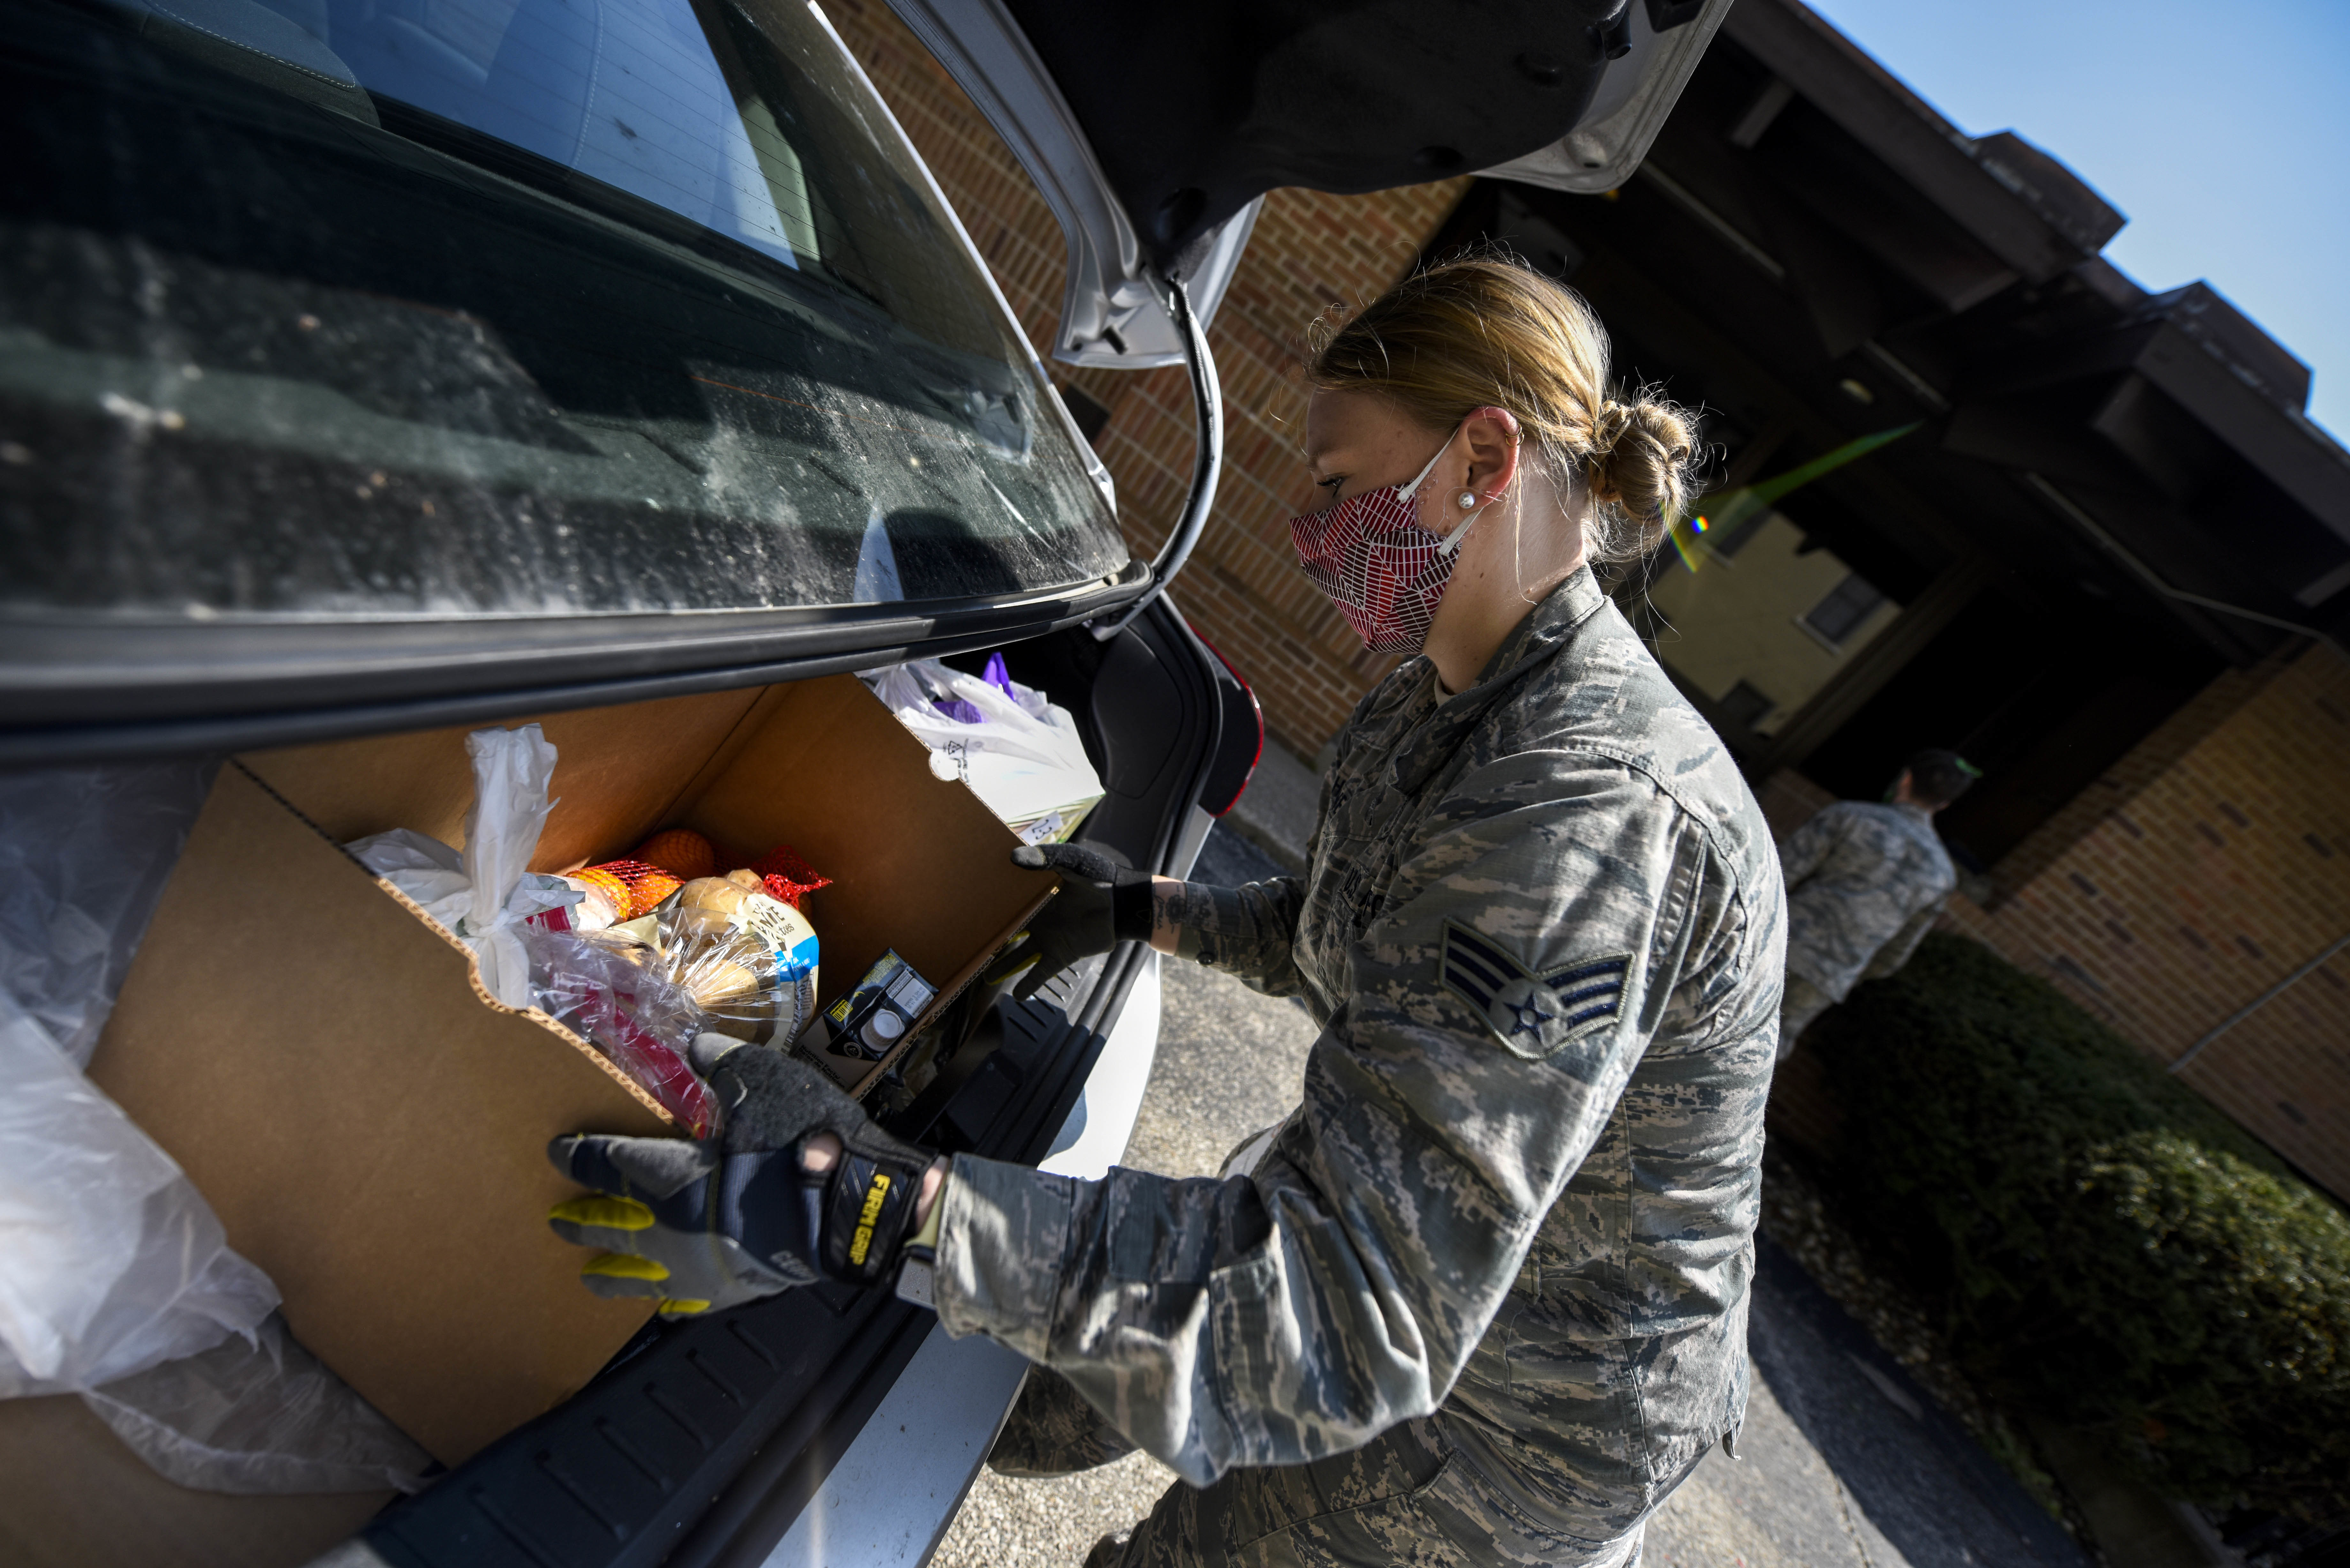 Female soldier loads grocercies into vehicle.